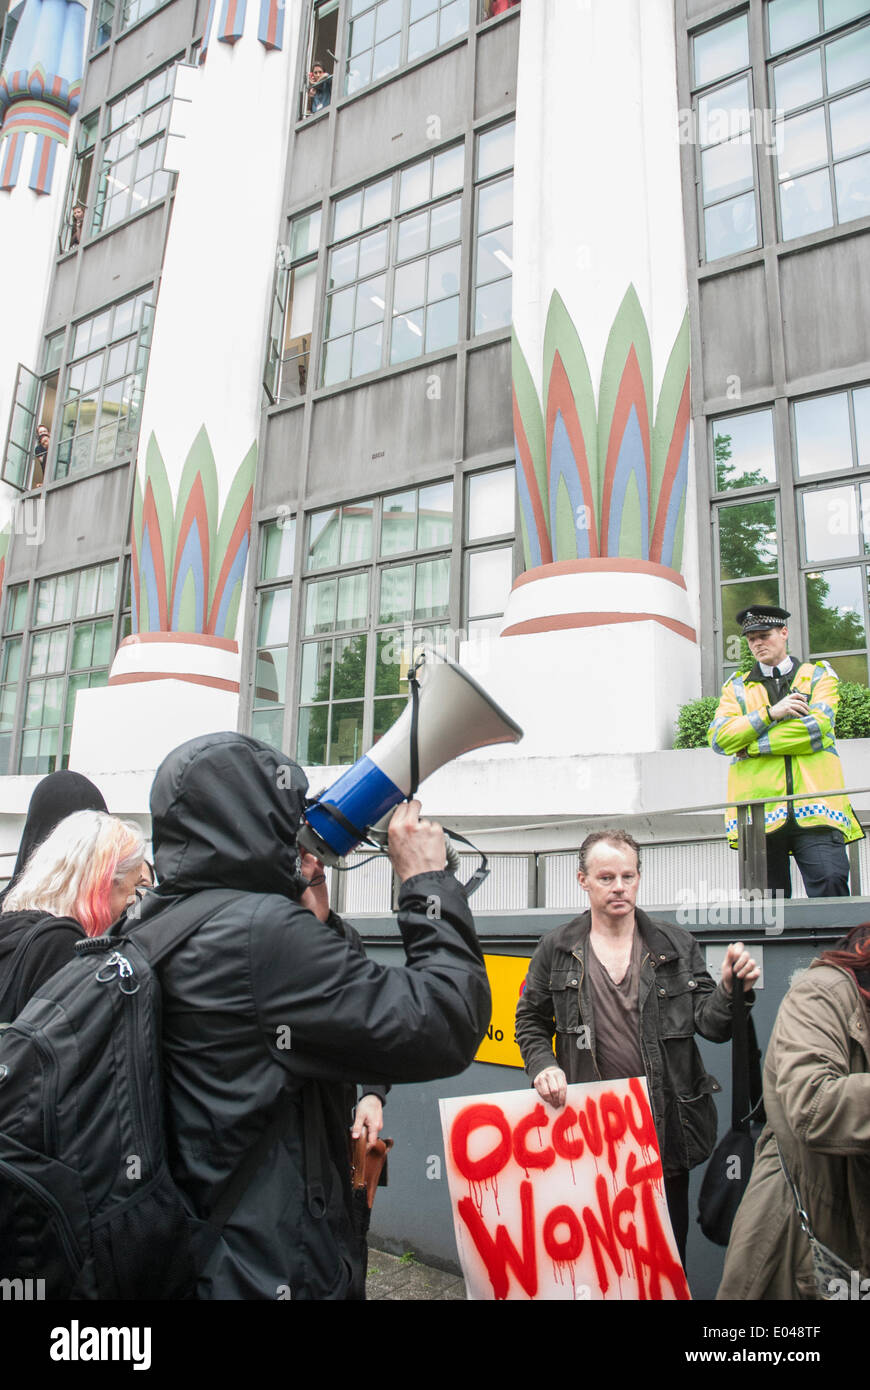 London, UK. 01st May, 2014. As the Occupy Wonga group protests outside the offices of WDFC UK Limited a man uses a loud hailer to address staff inside the building, the group is protesting against pay day loans that the company provides under the trading name wonga.com Credit:  Peter Manning/Alamy Live News - Stock Image